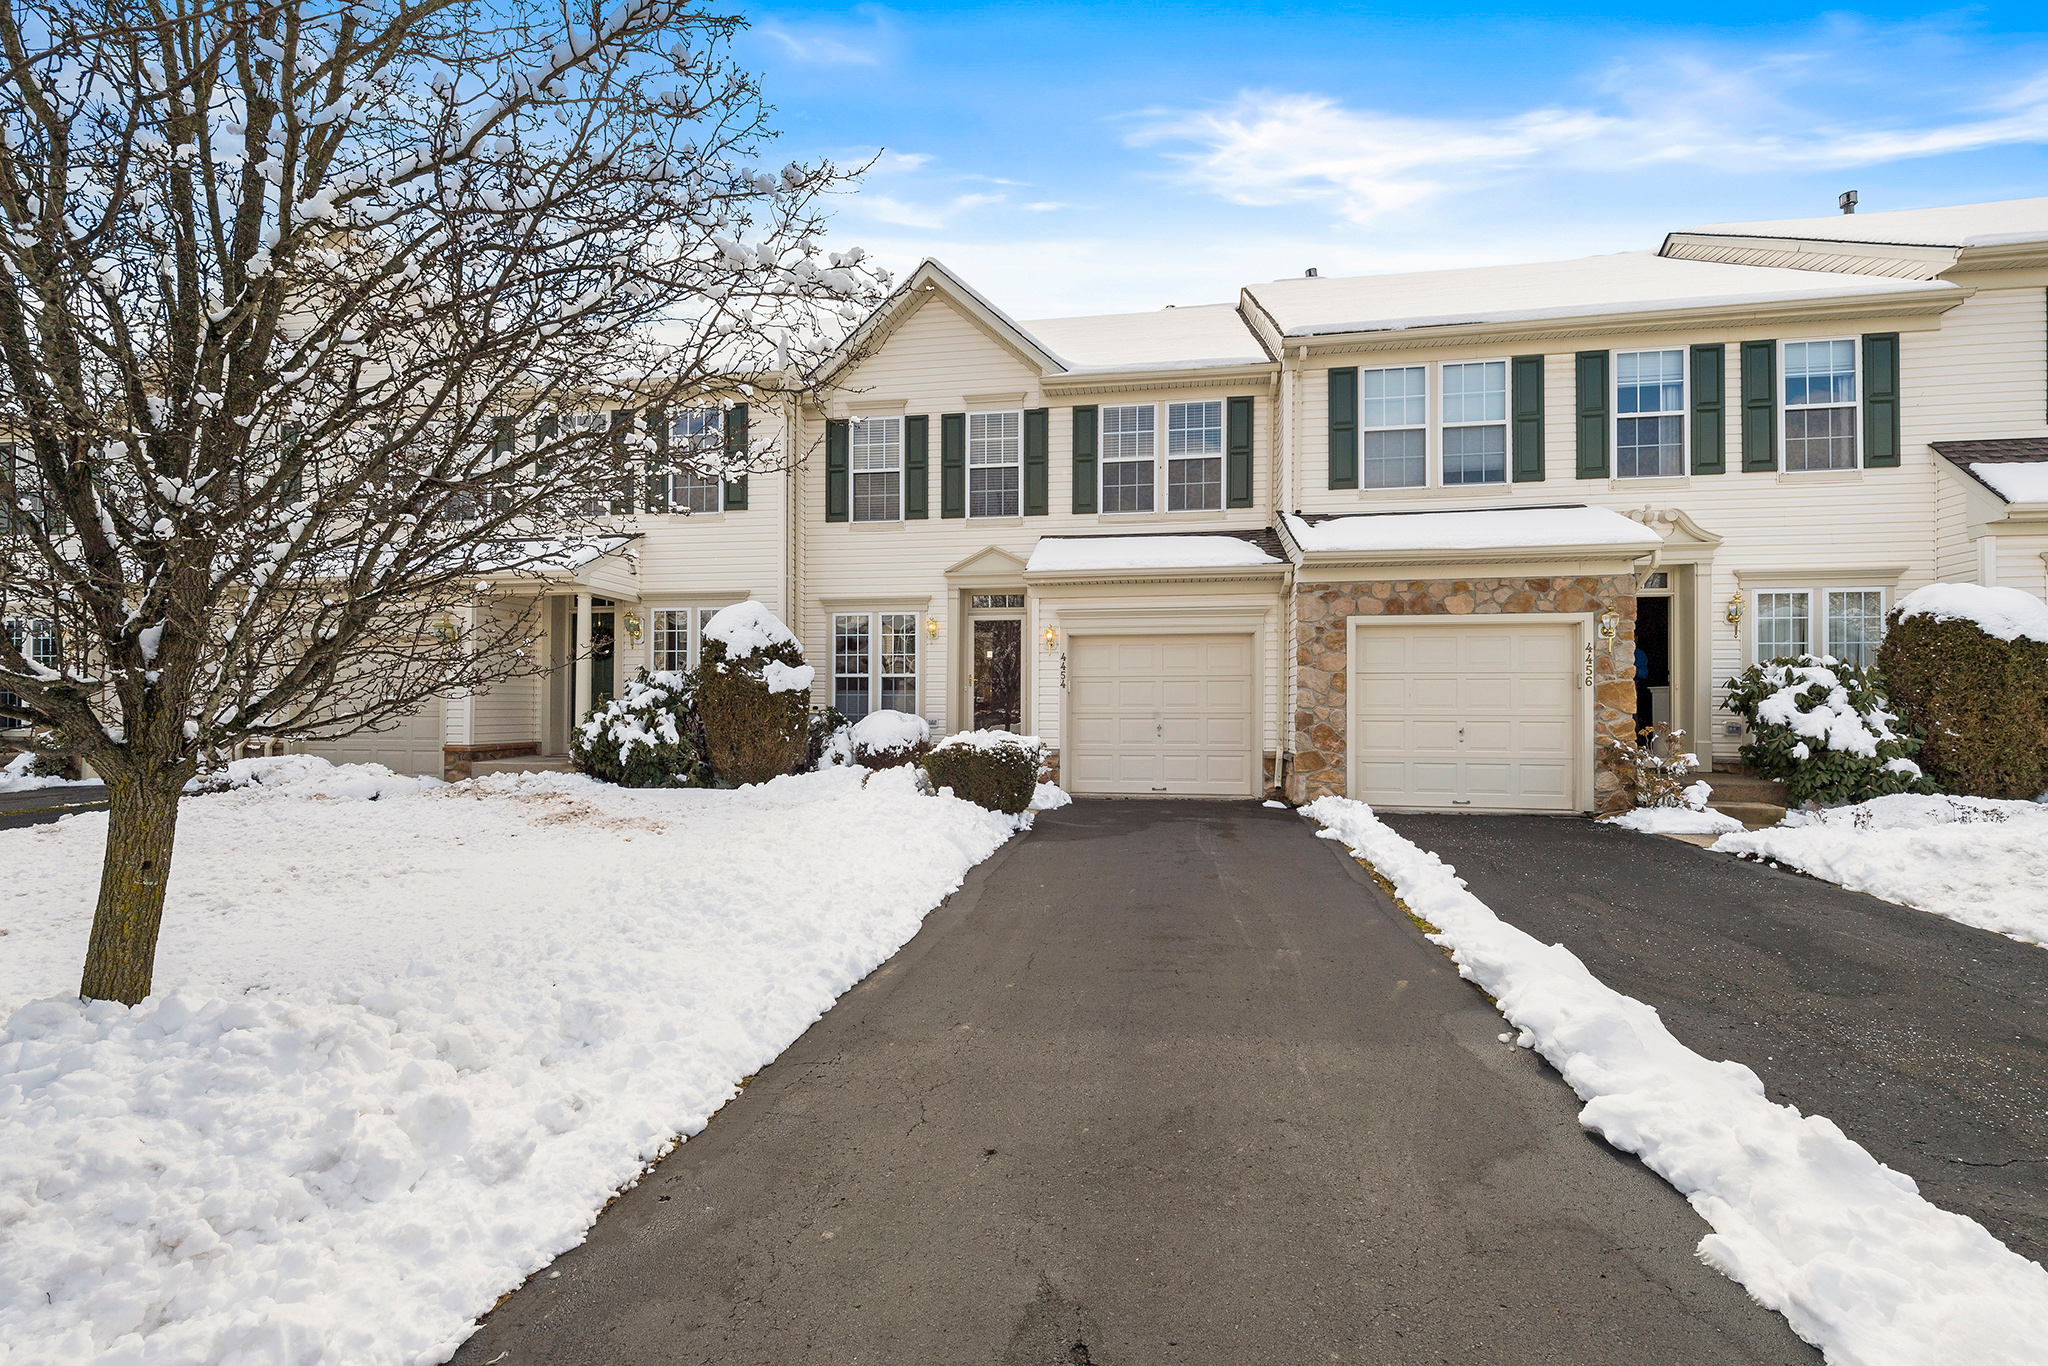 Summermeadow Townhouse Doylestown | Doylestown Realtor | Doylestown Realtors | Homes of Doylestown